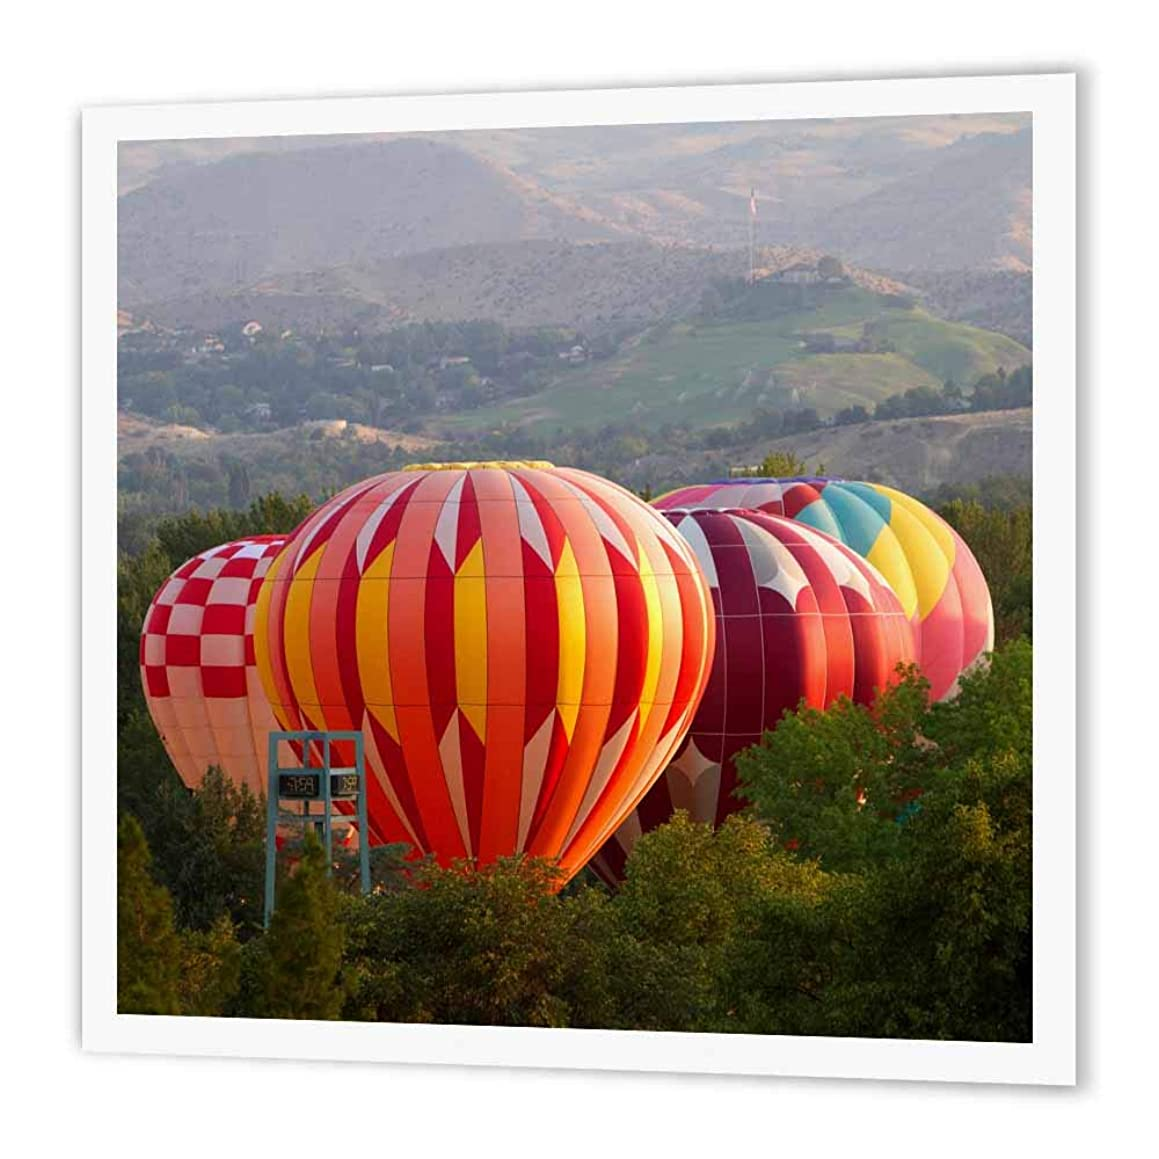 3dRose ht_209038_1 Hot Air Balloons in Ann Morrison Park in Boise, Idaho, USA Iron on Heat Transfer Paper for White Material, 8 by 8